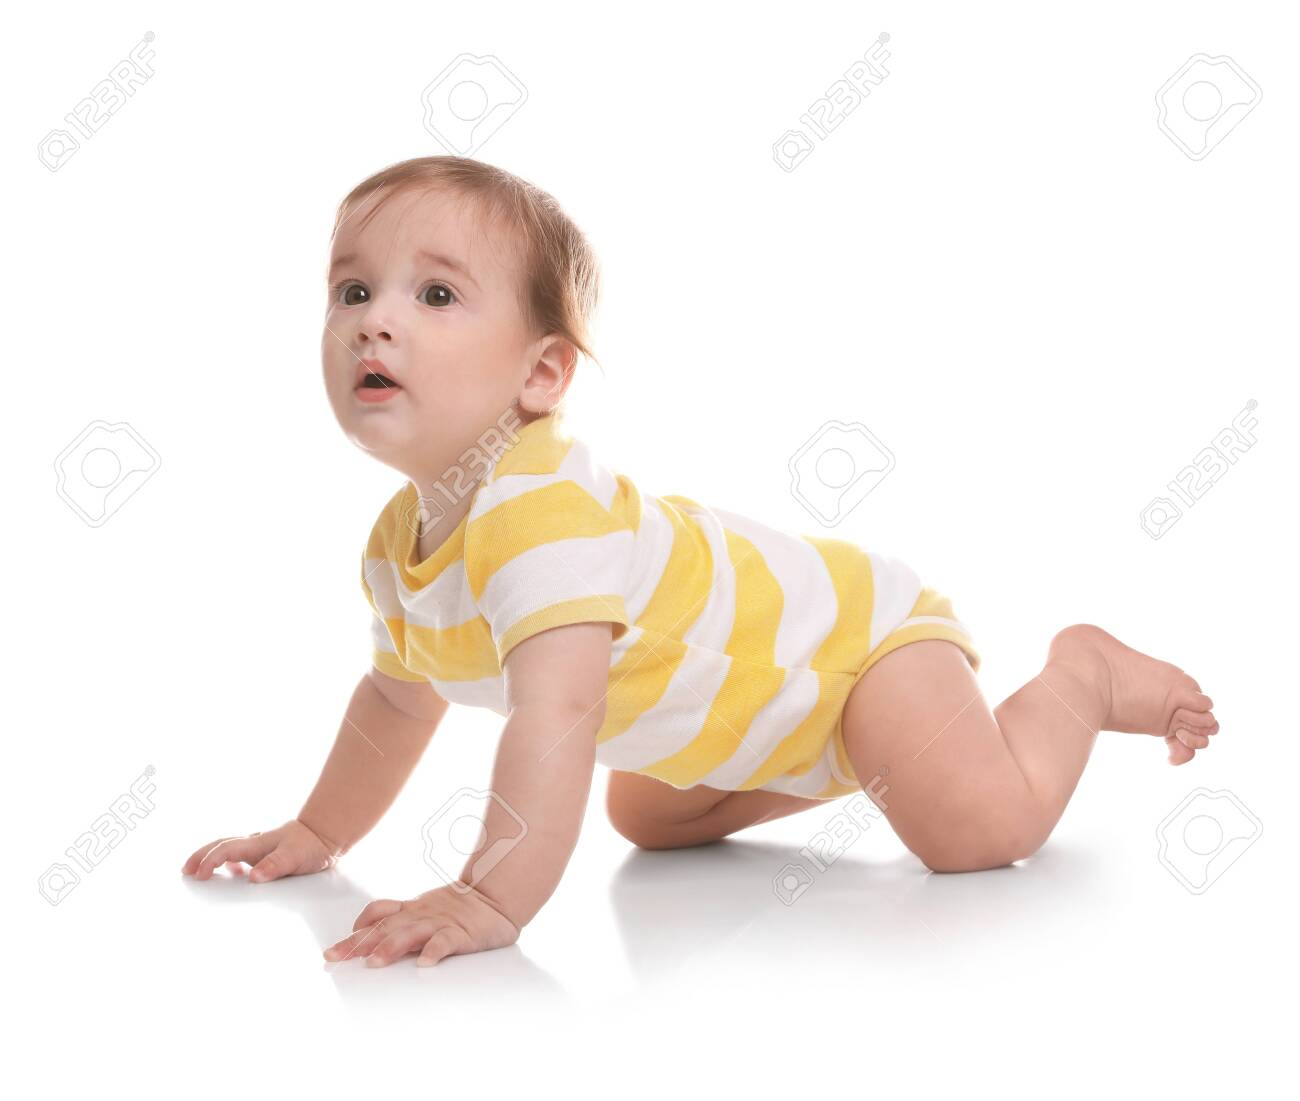 Cute little baby crawling on white background - 125972409